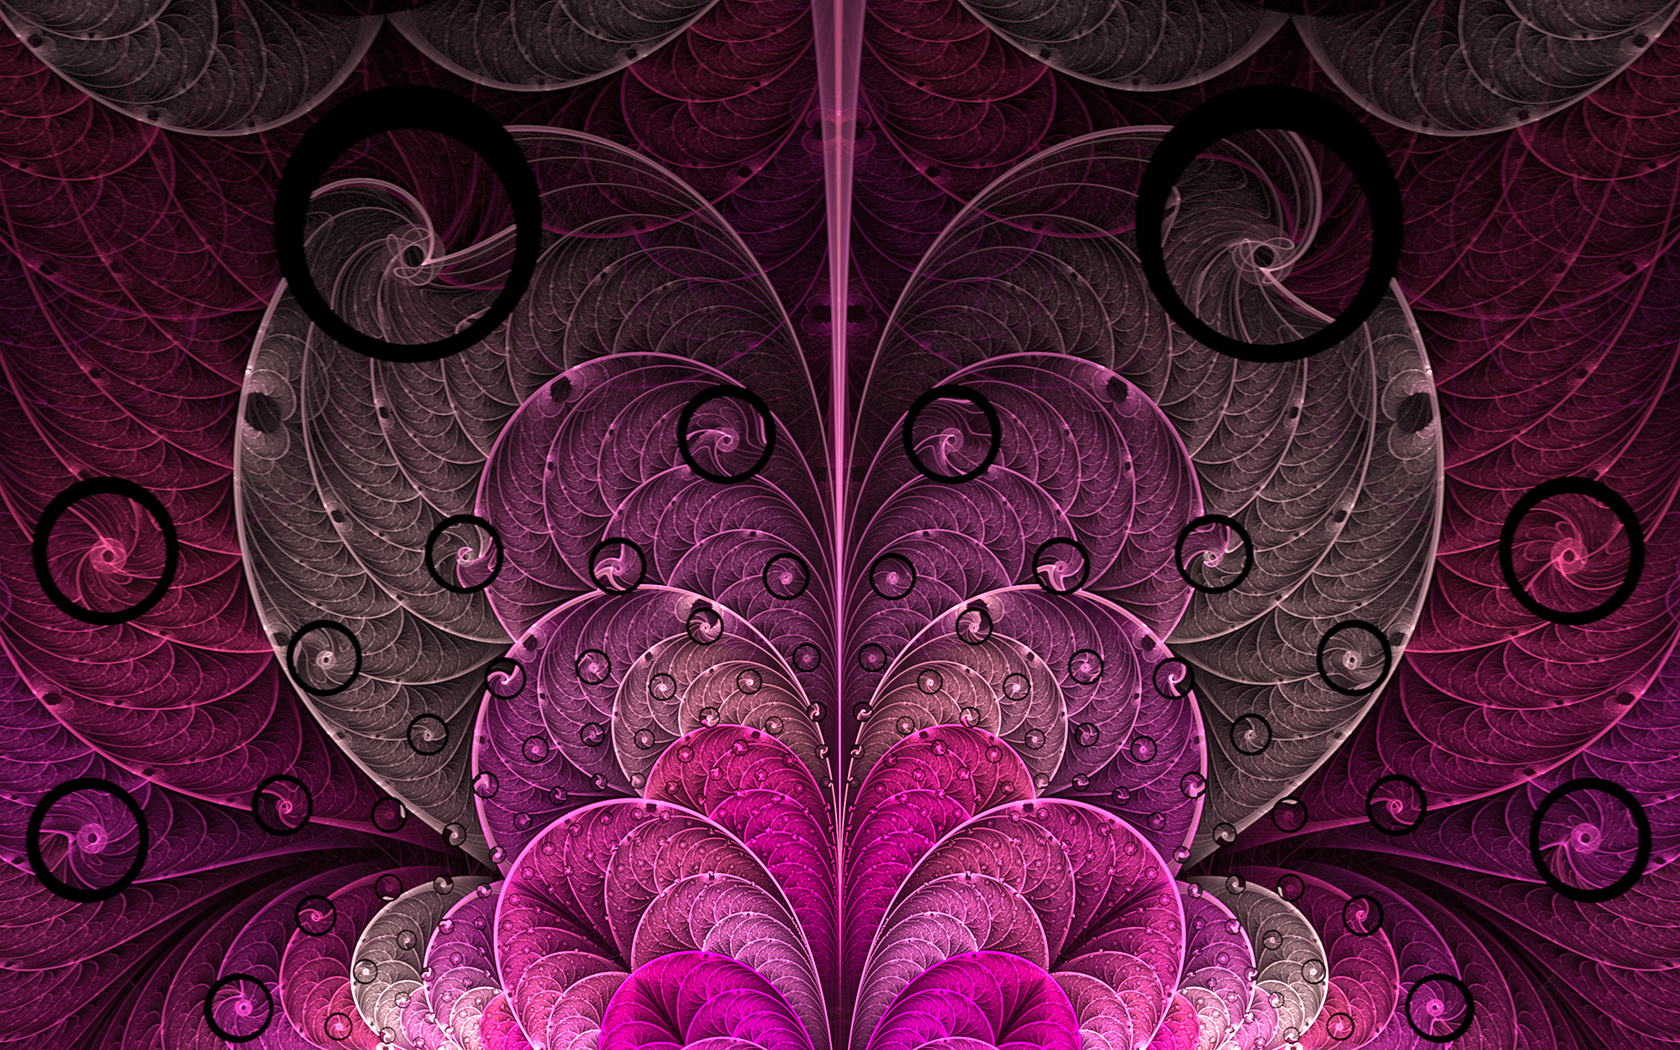 Neon Fall Wallpapers Pink Amp Purple Hearts Fractal Wallpapers Pink Amp Purple